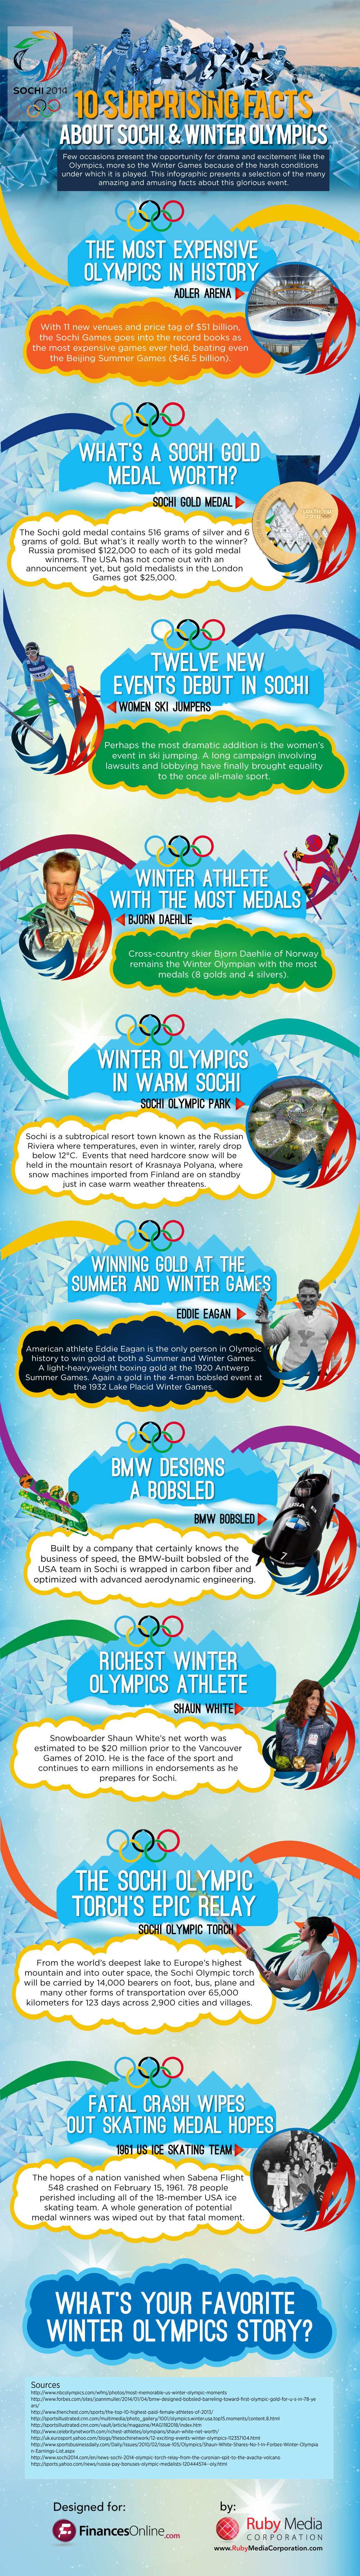 2014 Sochi Winter Olympics : 10 Amazing Facts About The Value of Gold Medals